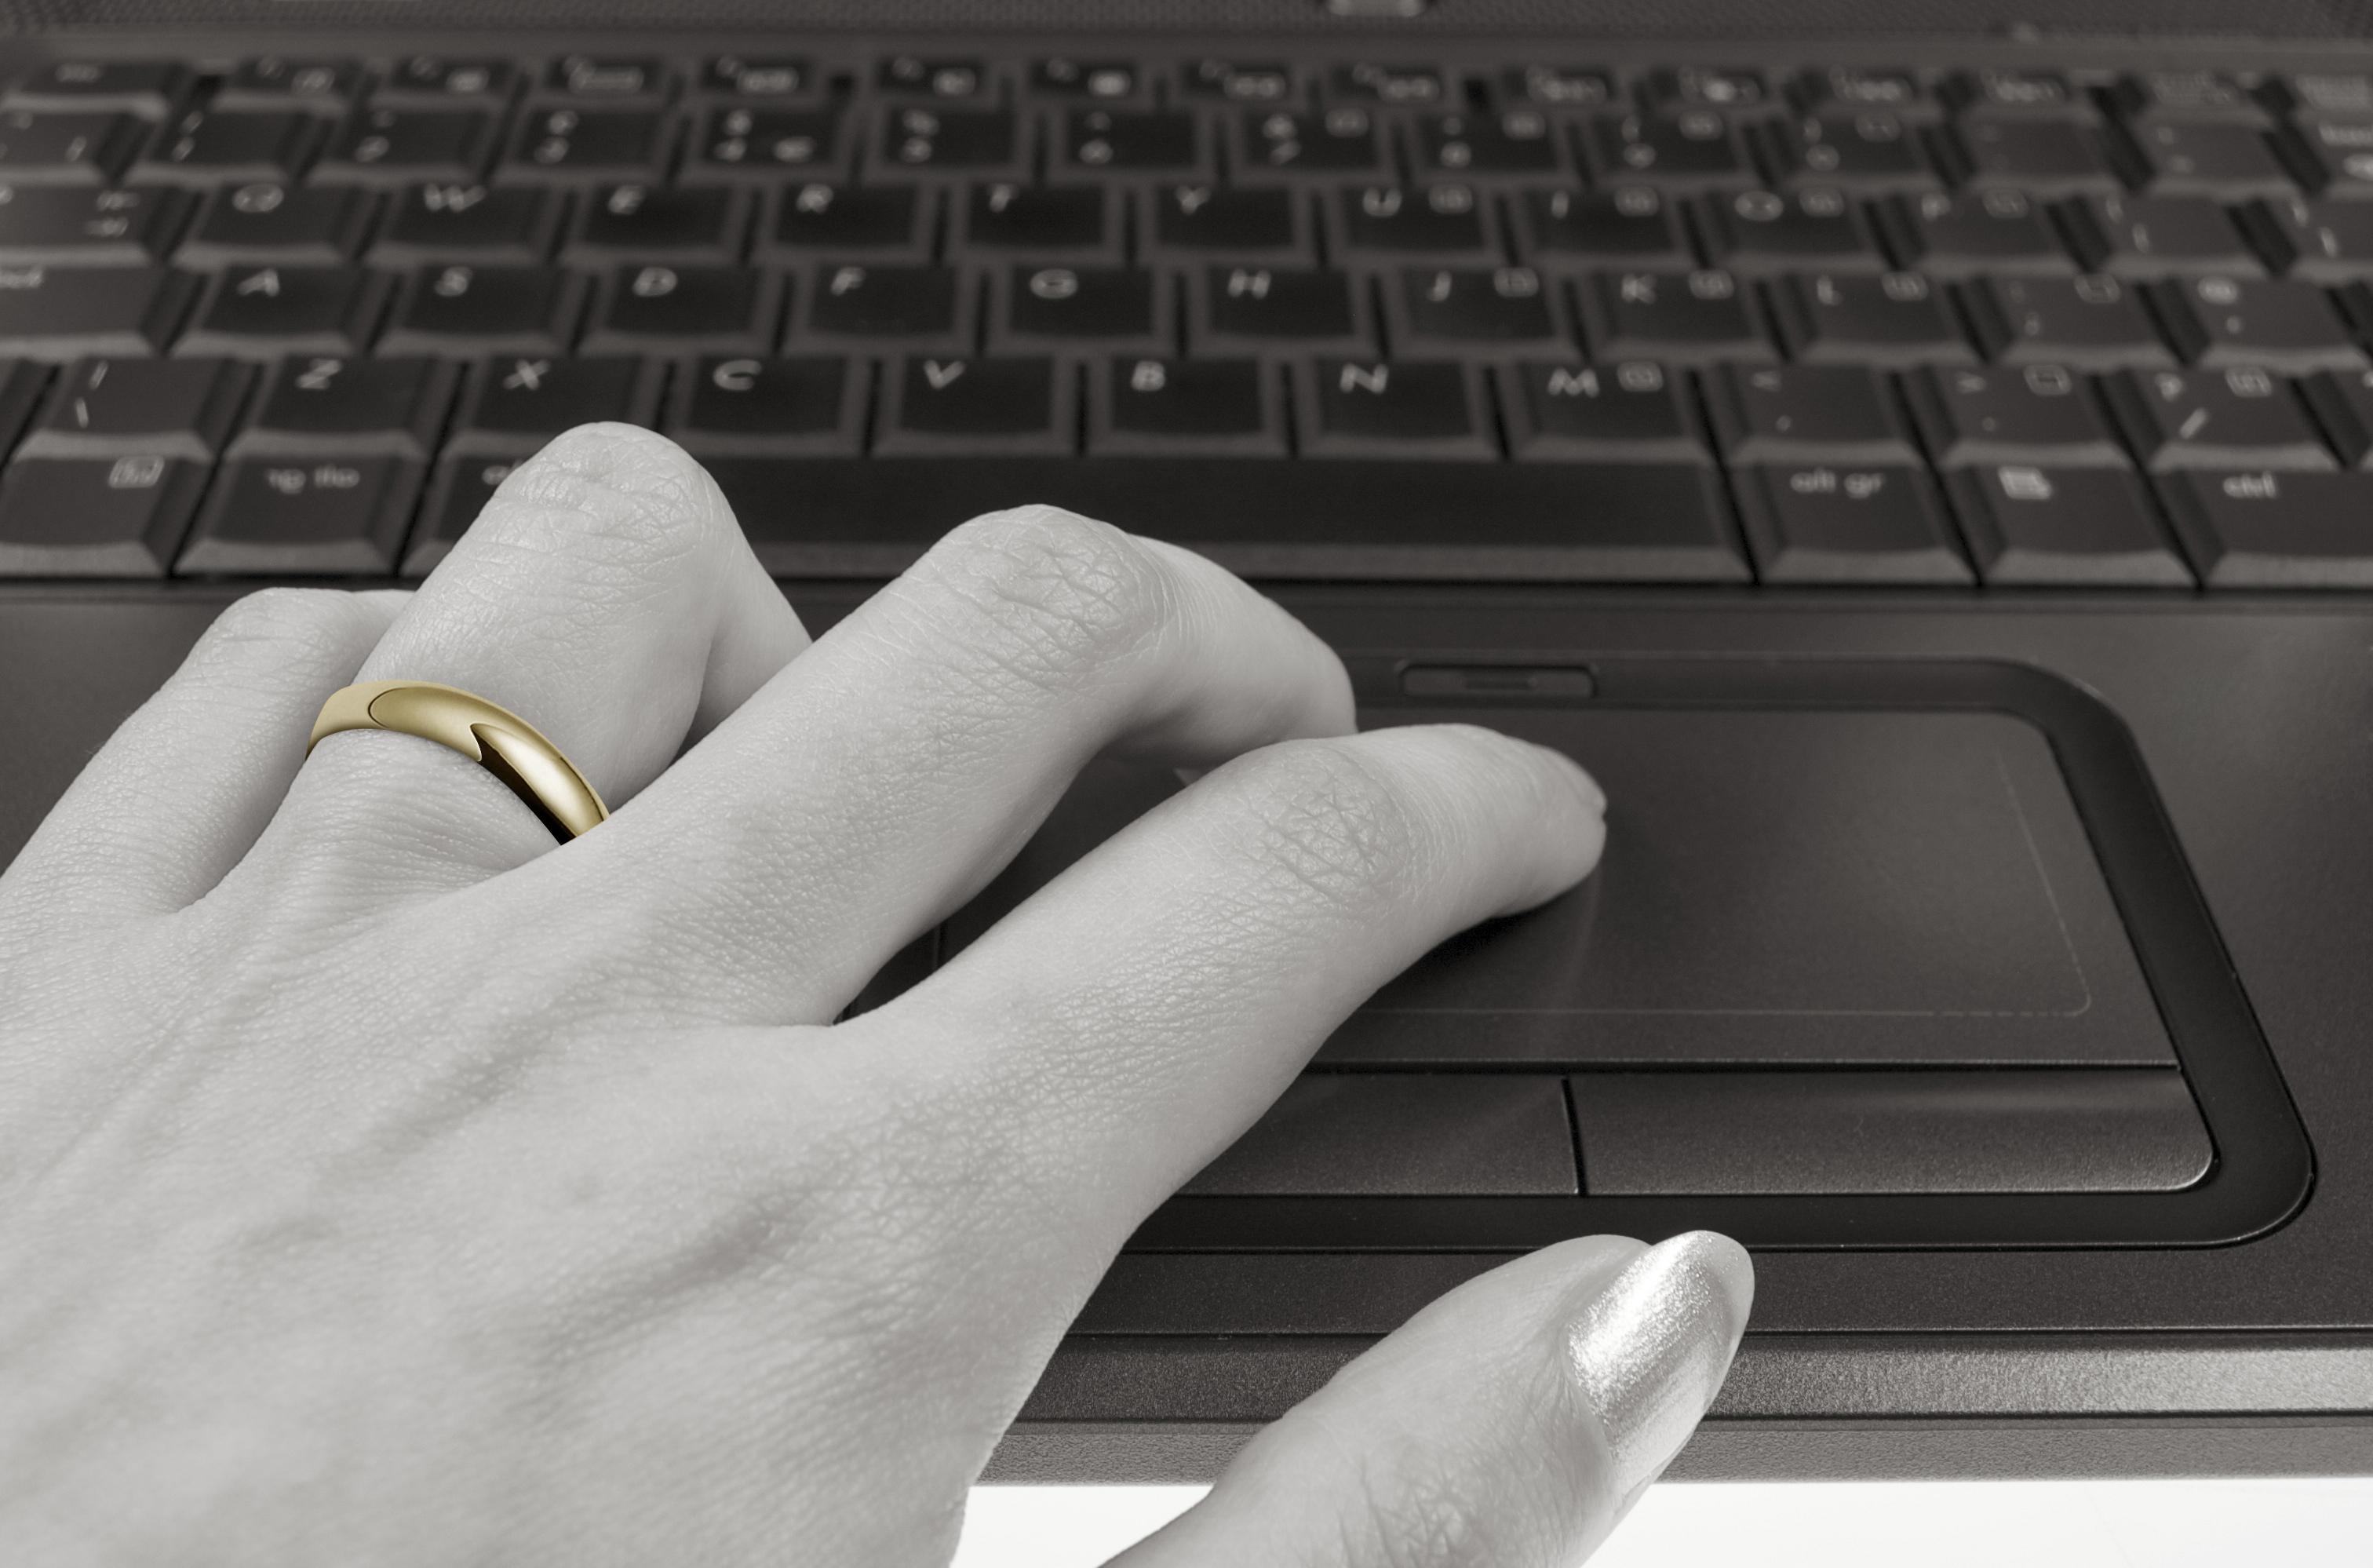 Just a Facebook Message or Something More? Examining Online Infidelity